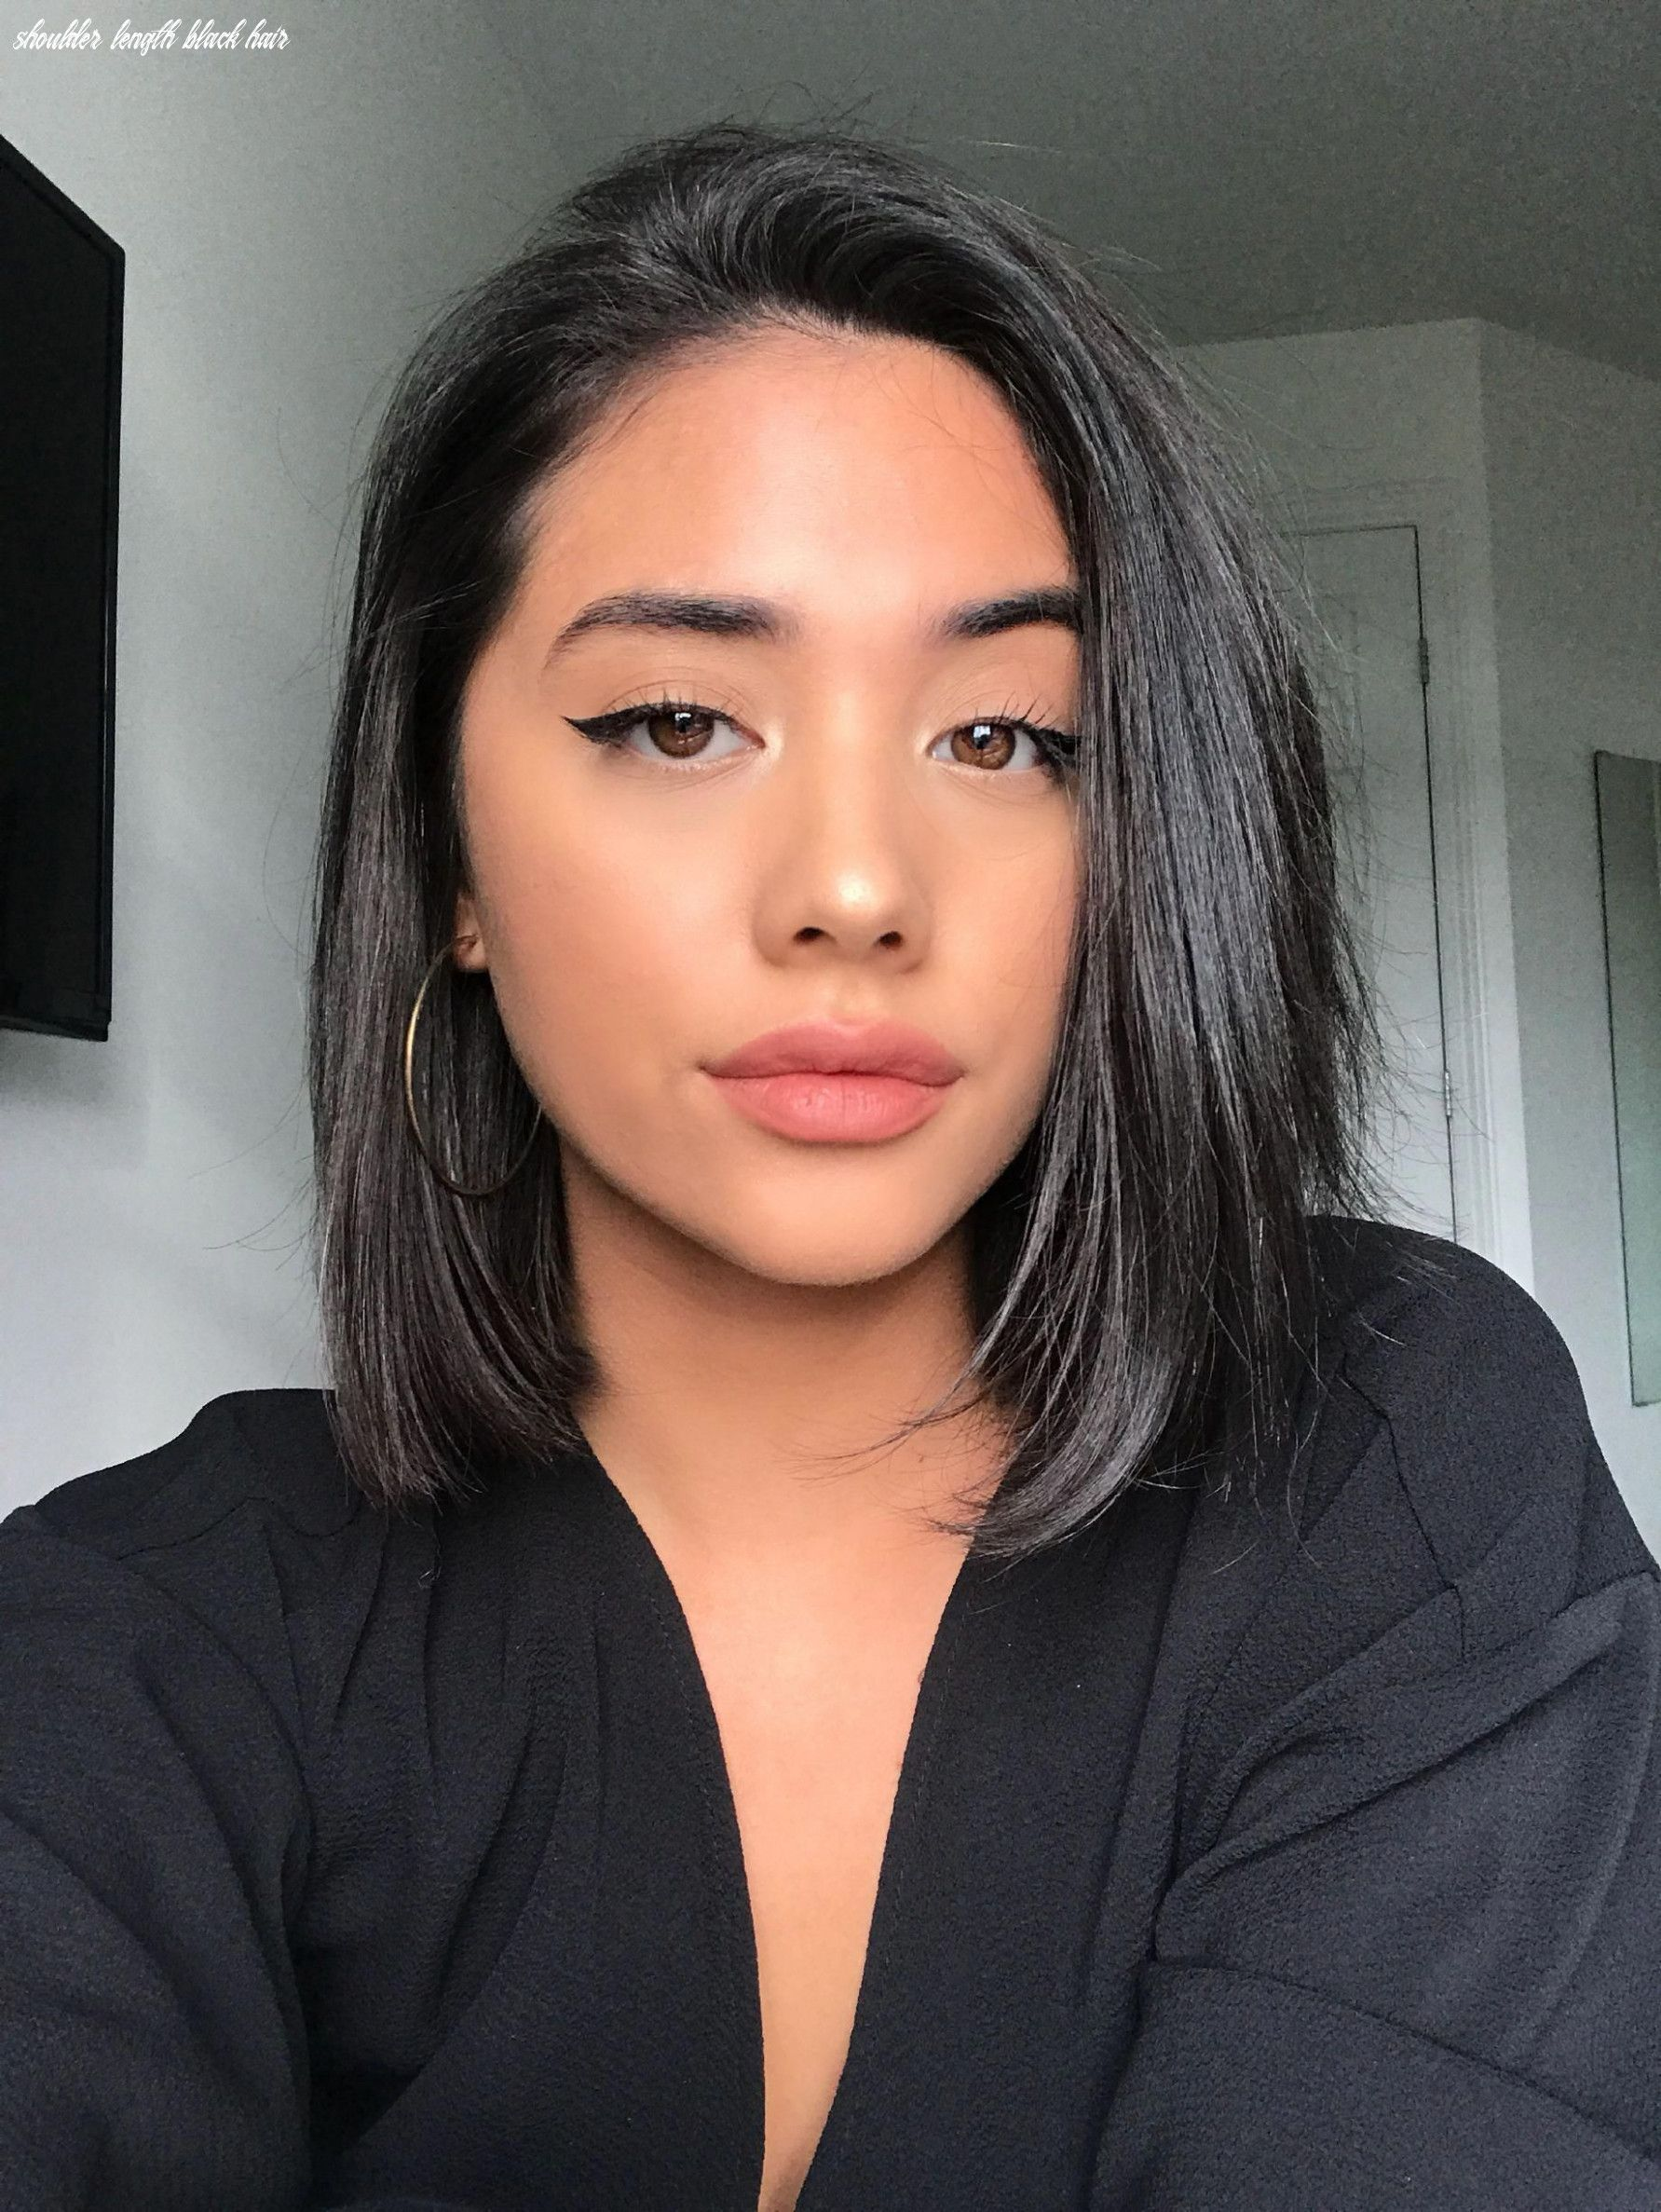 8 Shoulder Length Black Hair In 2020 Front Lace Wigs Human Hair Wig Hairstyles Short Hair Styles